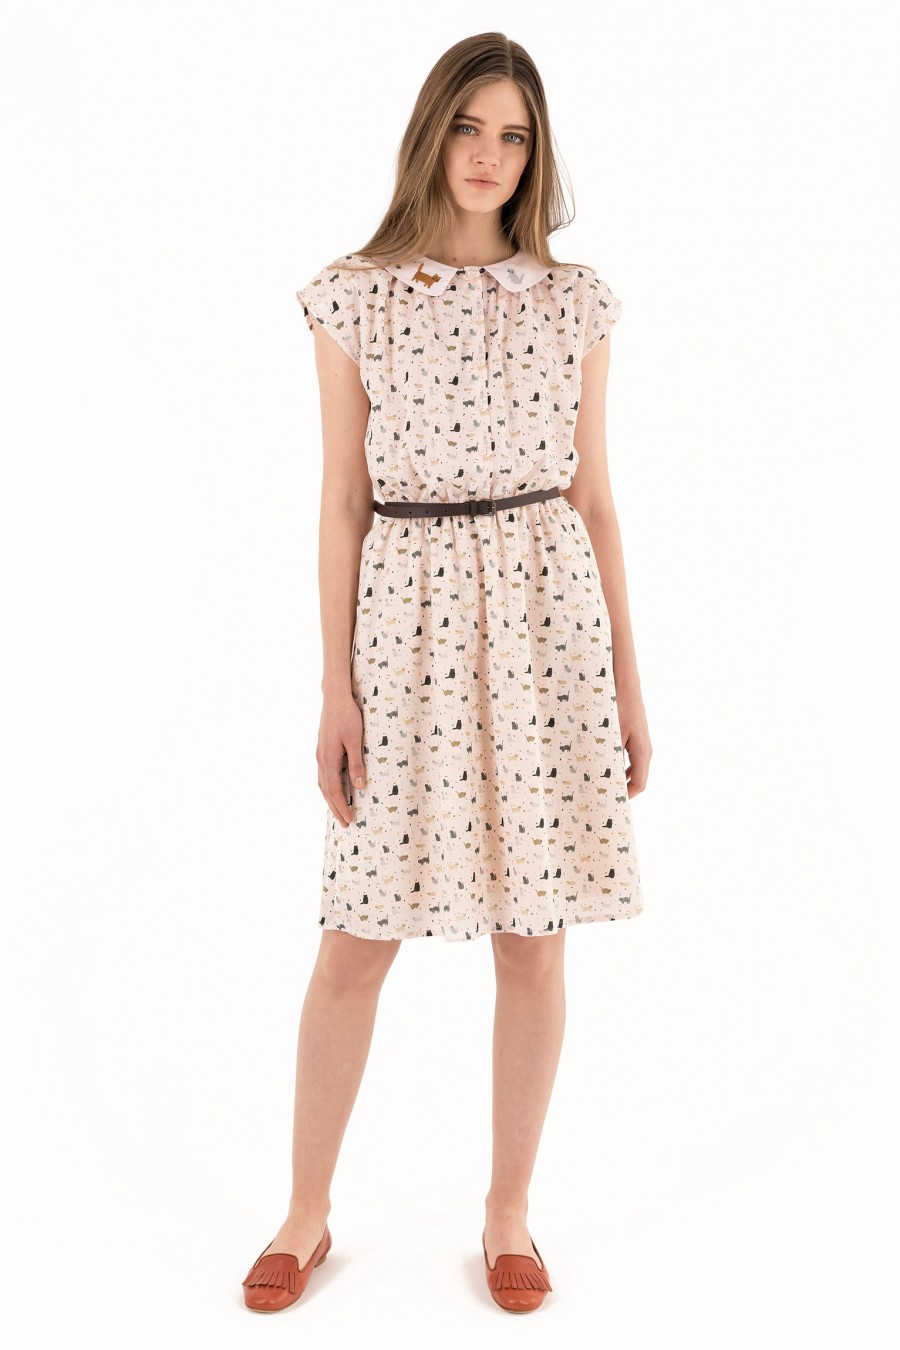 dress in lightweight cotton poplin